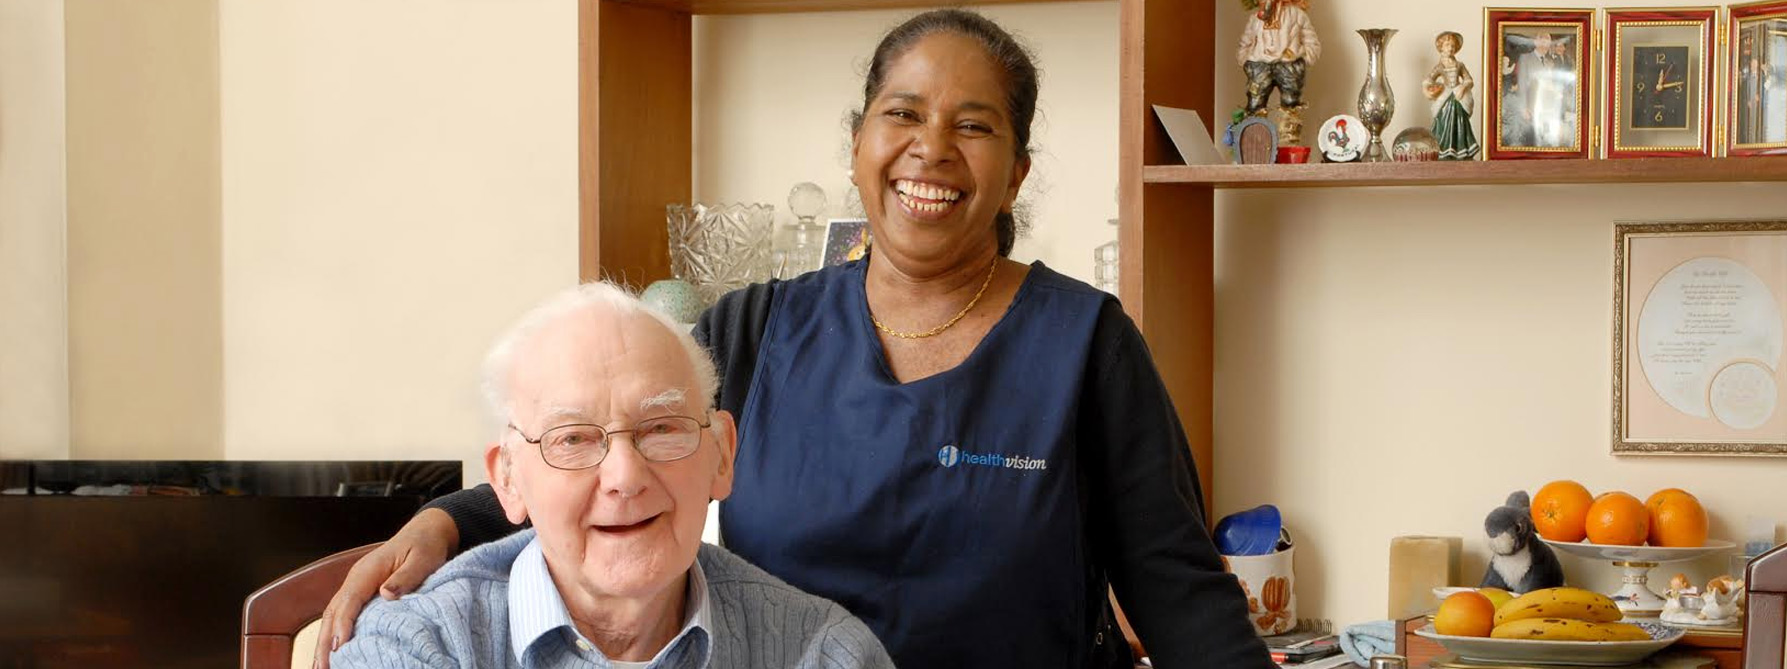 Home Care Agency in kensington and Chelsea